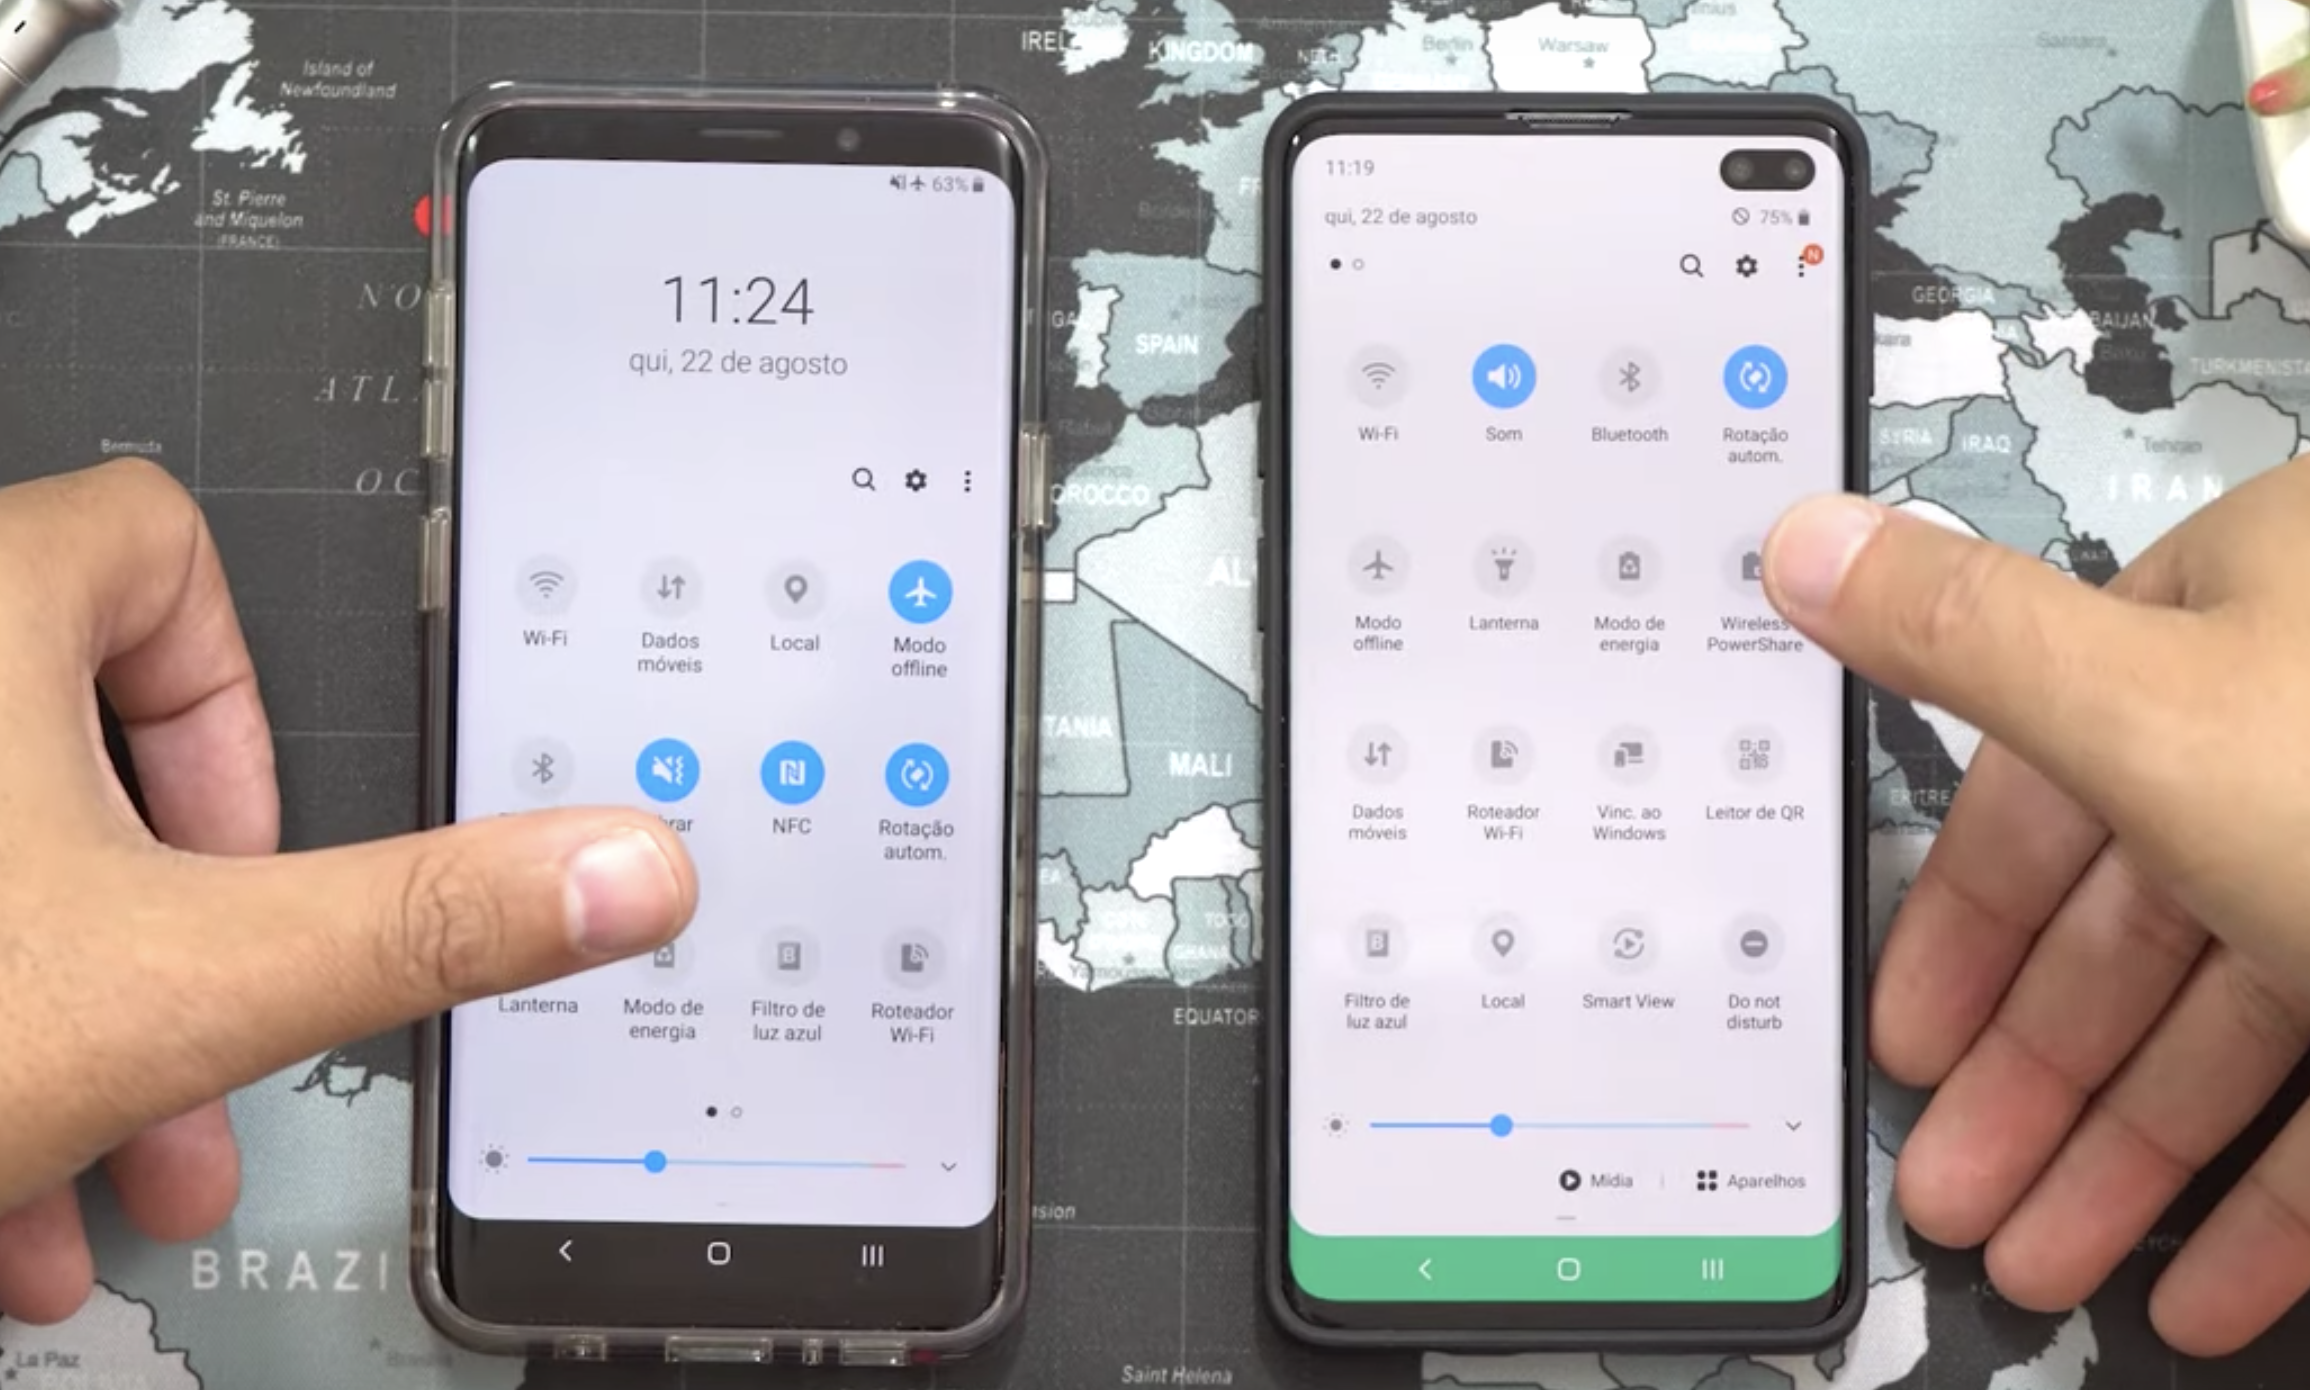 Purported Samsung Android 10 developer build shows a largely unchanged One UI 2.0